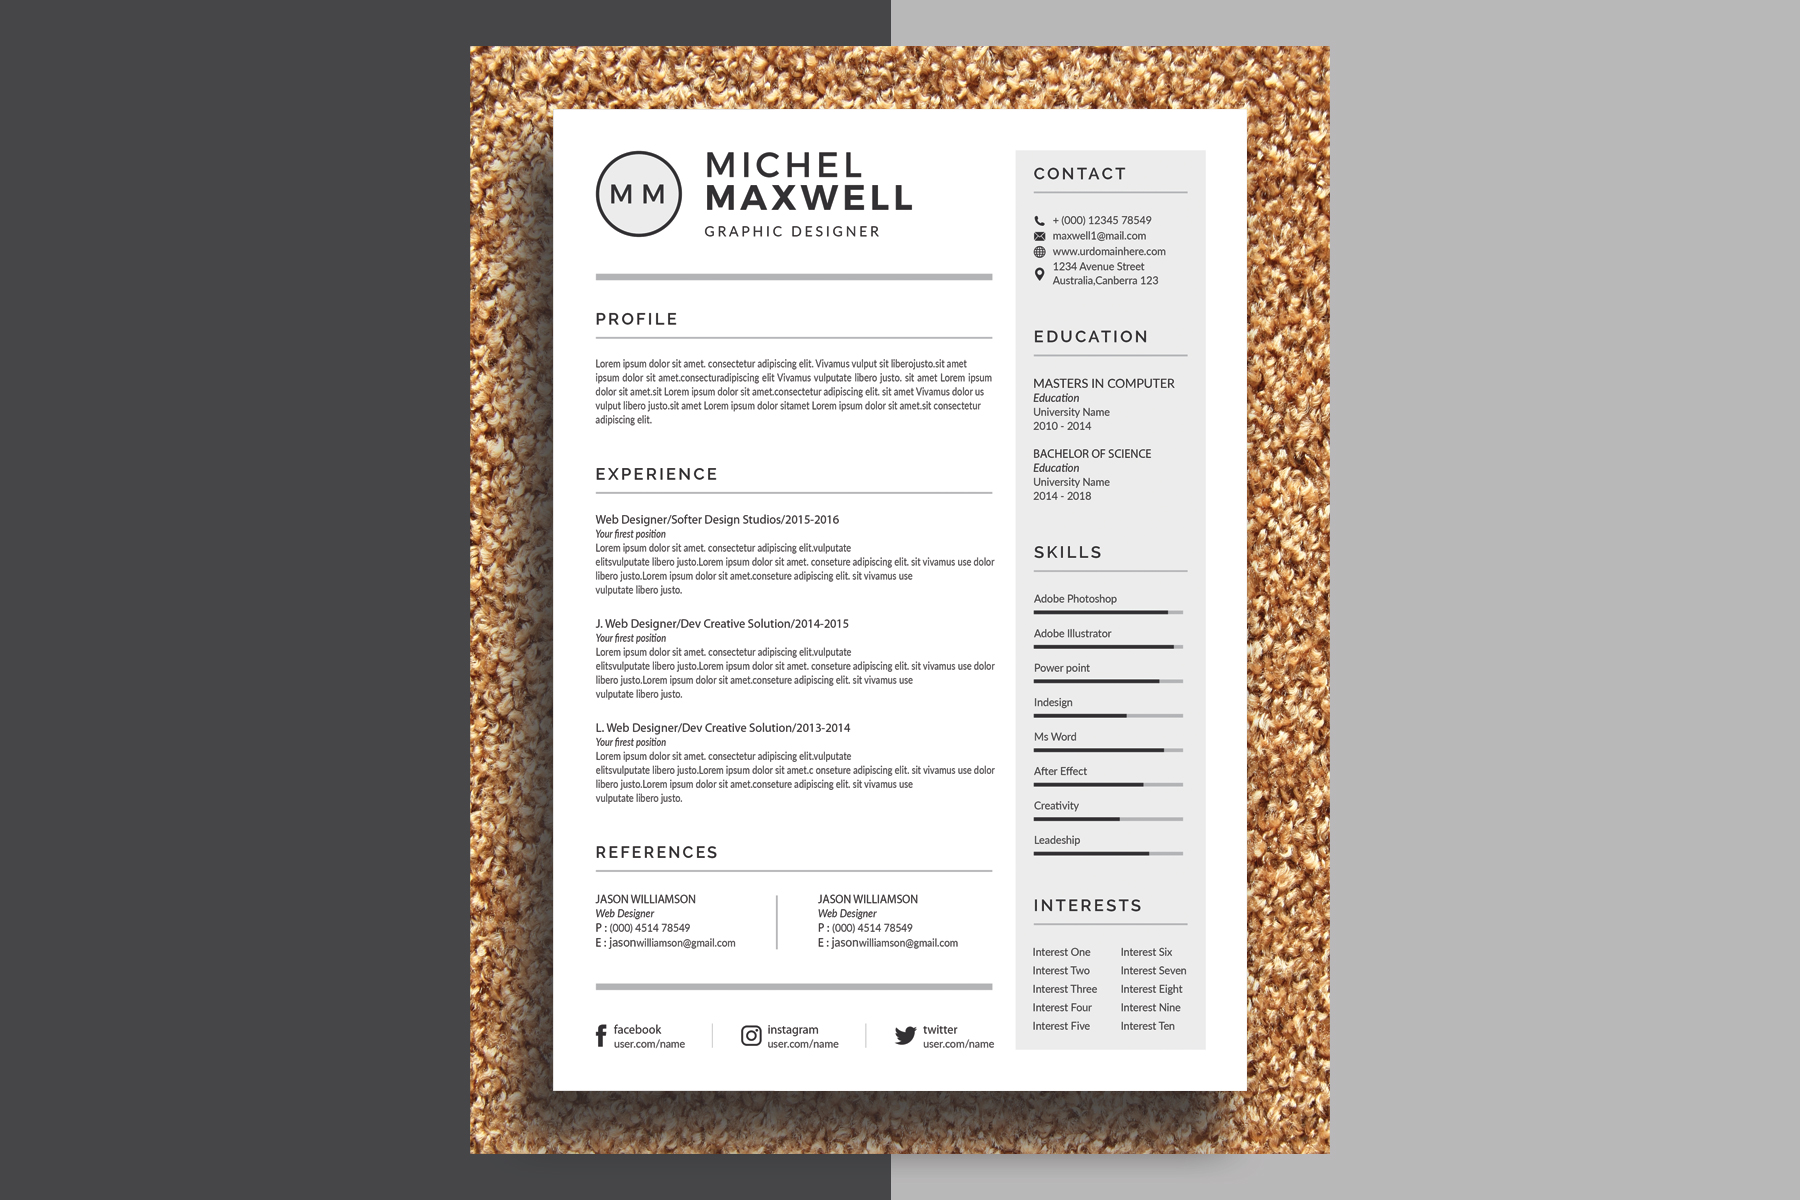 Michel Maxwell - Resume Template